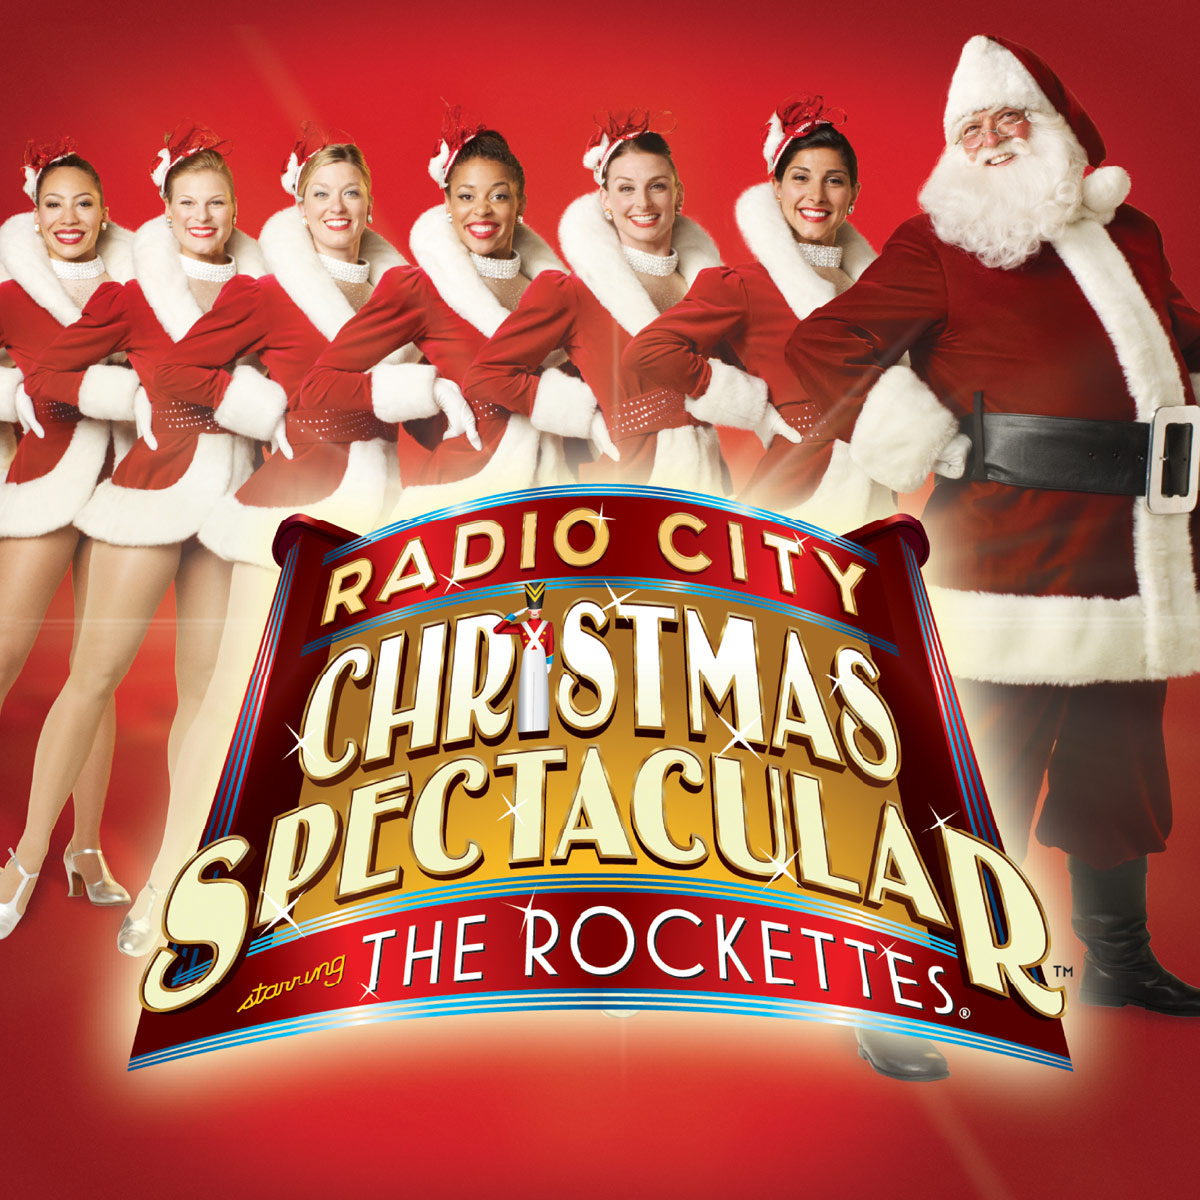 Rockettes Christmas Show.Nyc Radio City Christmas Spectacular December 8 2019